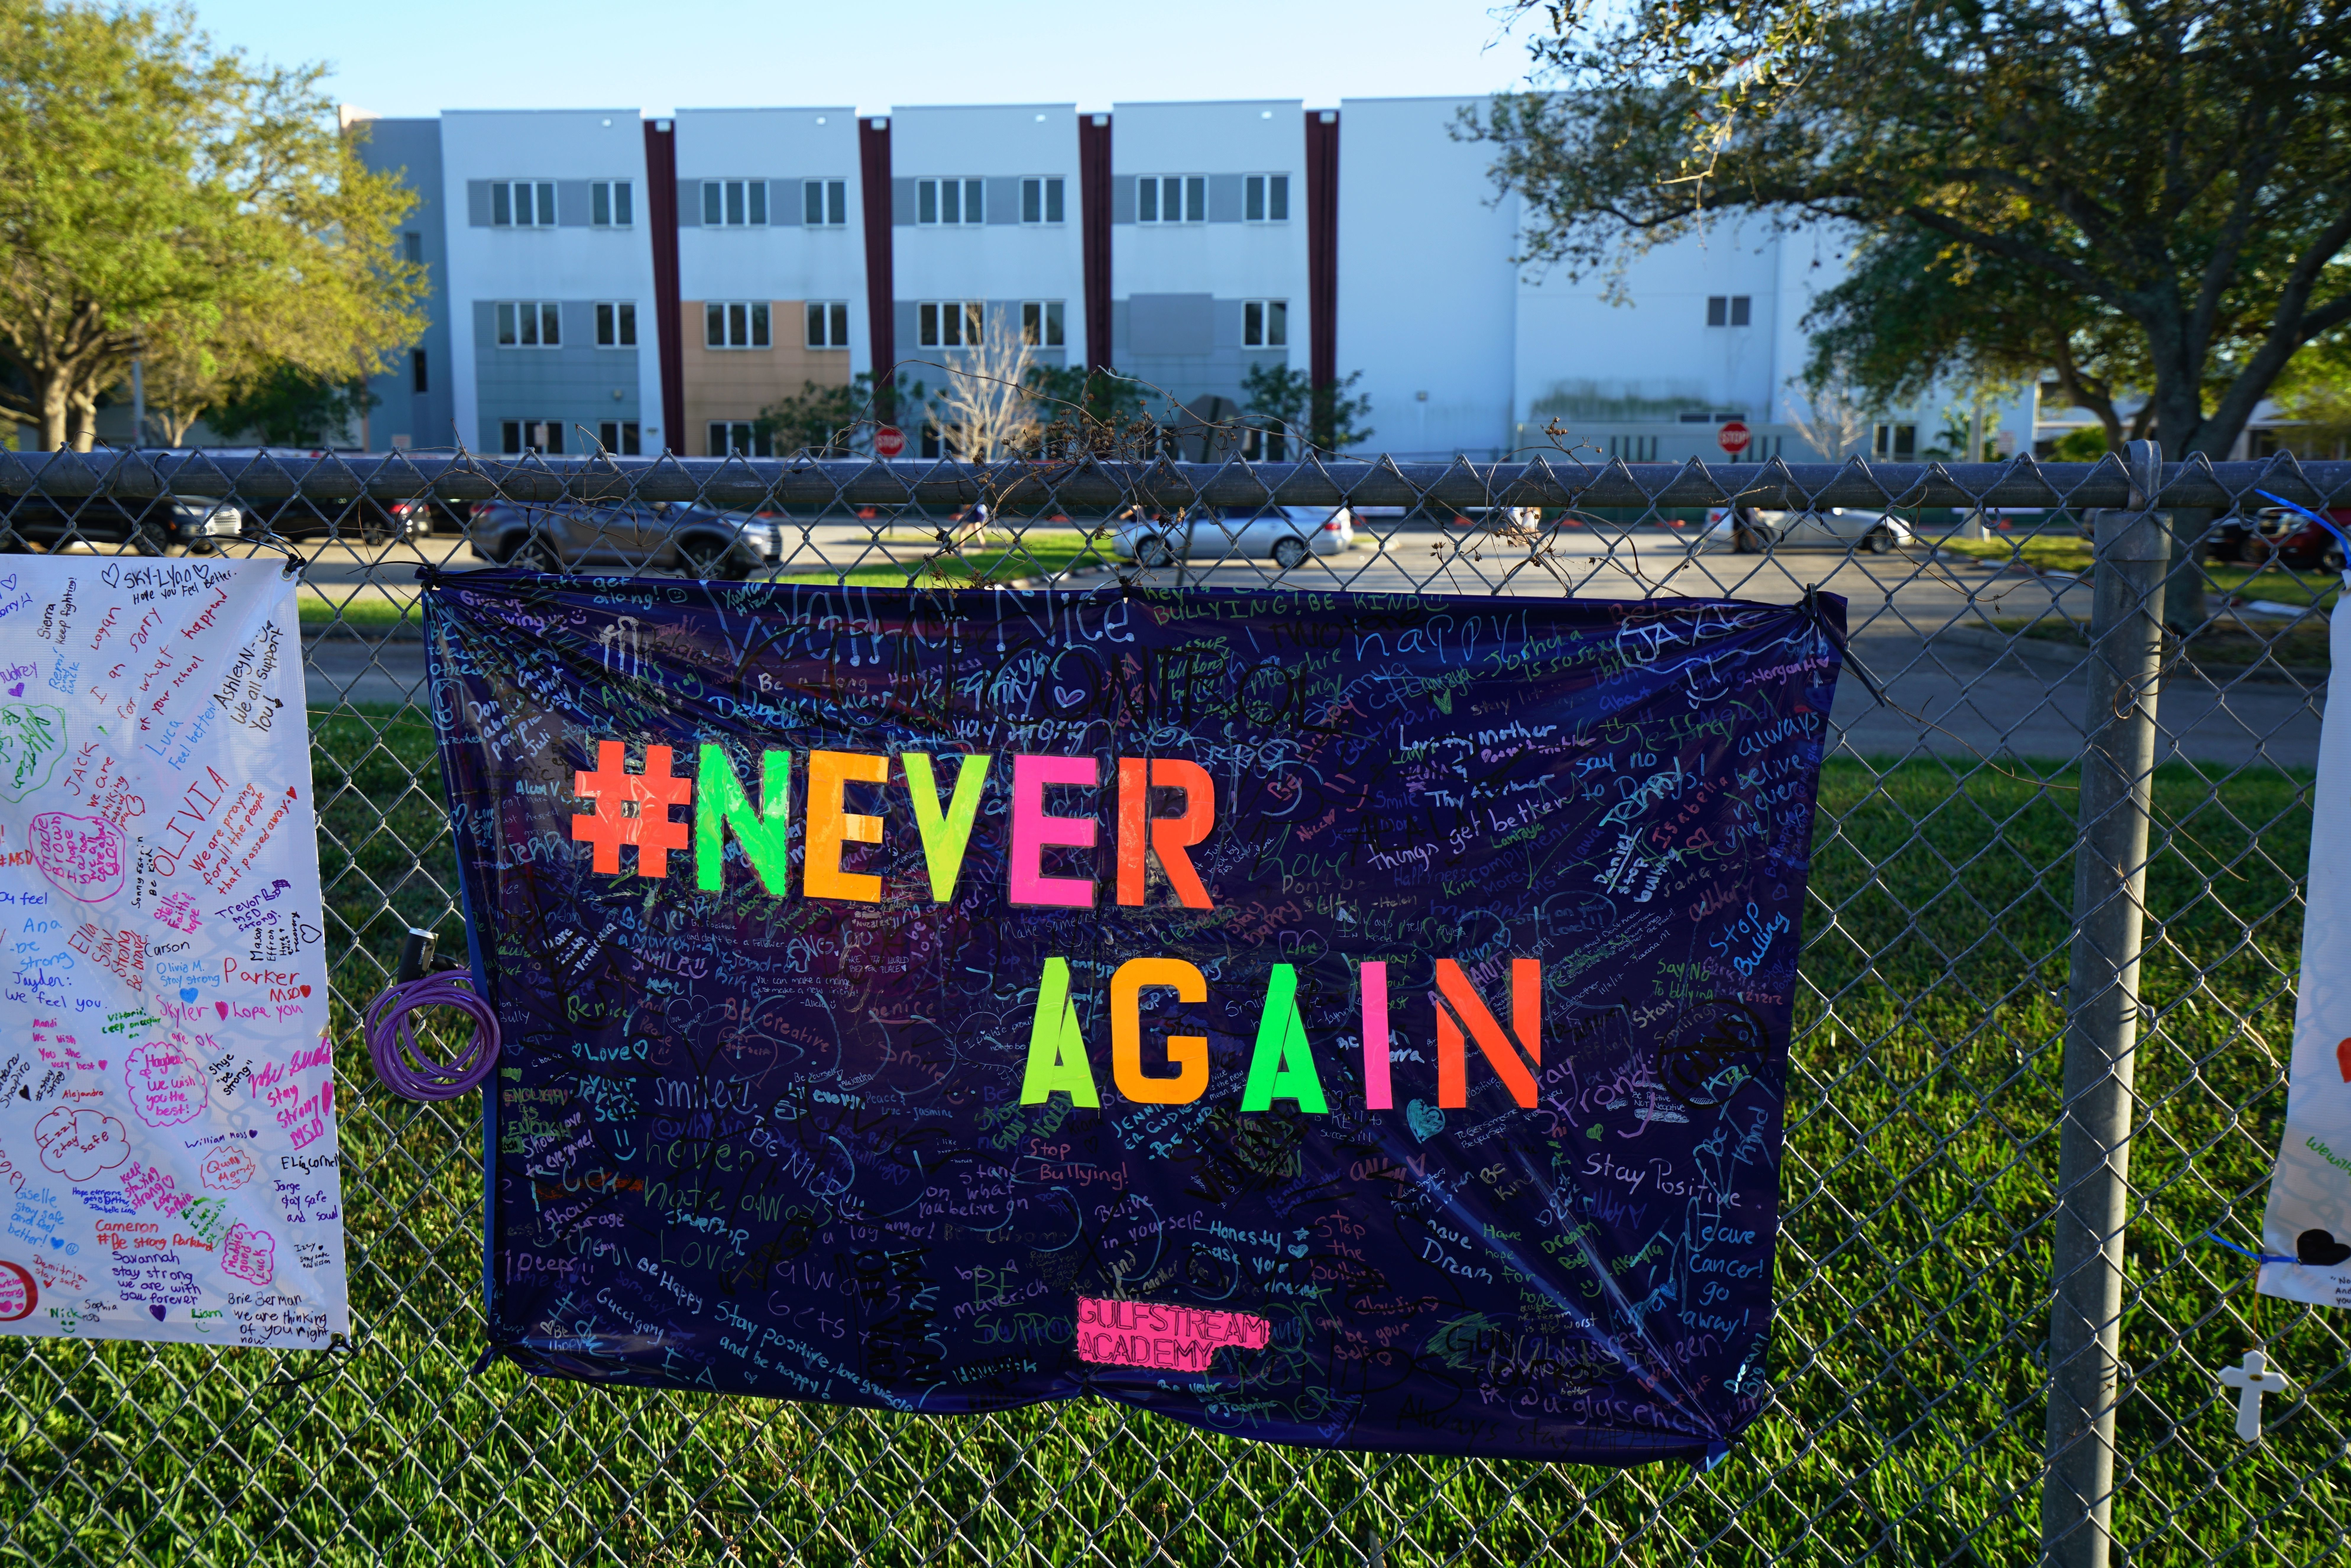 MARJORY STONEMAN DOUGLAS HIGH SCHOOL, PARKLAND, FLORIDA. 02/25/2018 In the background, the school building, now slated to be demolished, where 17 children and teachers were killed by lone gunman Nikolas Cruz.  On February 14, 2018, a former school  Stoneman Douglas student Nikolas Cruz entered the school at 2.30pm and proceeded to kill 3 teachers and 14 school children in a 7 minute shooting spree. Marjory Stoneman Douglas High School is located in Parkland, Florida, in the Miami metropolitan area. It is a part of the Broward County Public School district, and it is the only public high school in Parkland. (Photo by Giles Clarke/Getty Images)